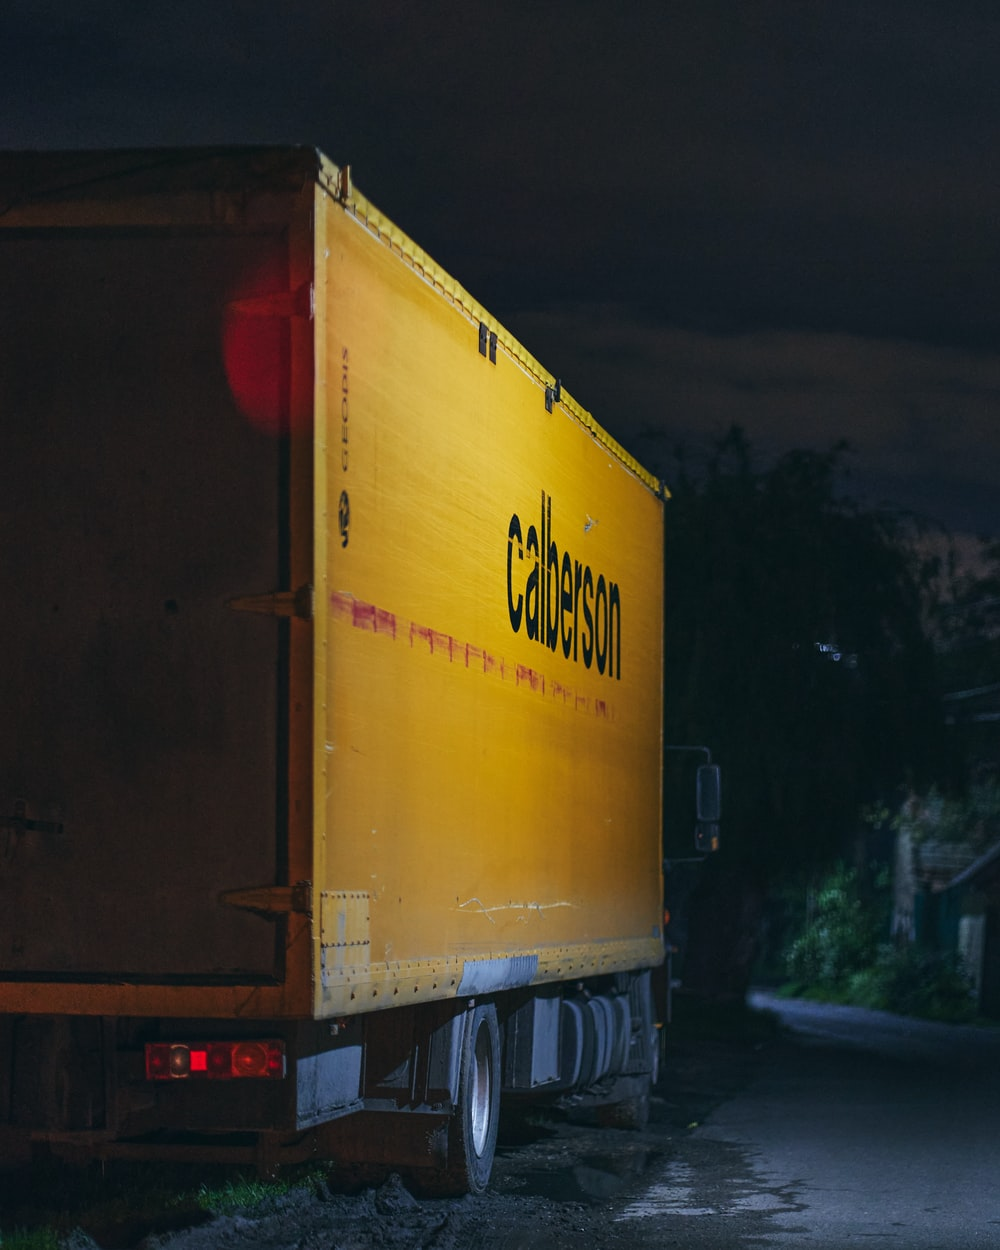 yellow and red box truck on road during night time